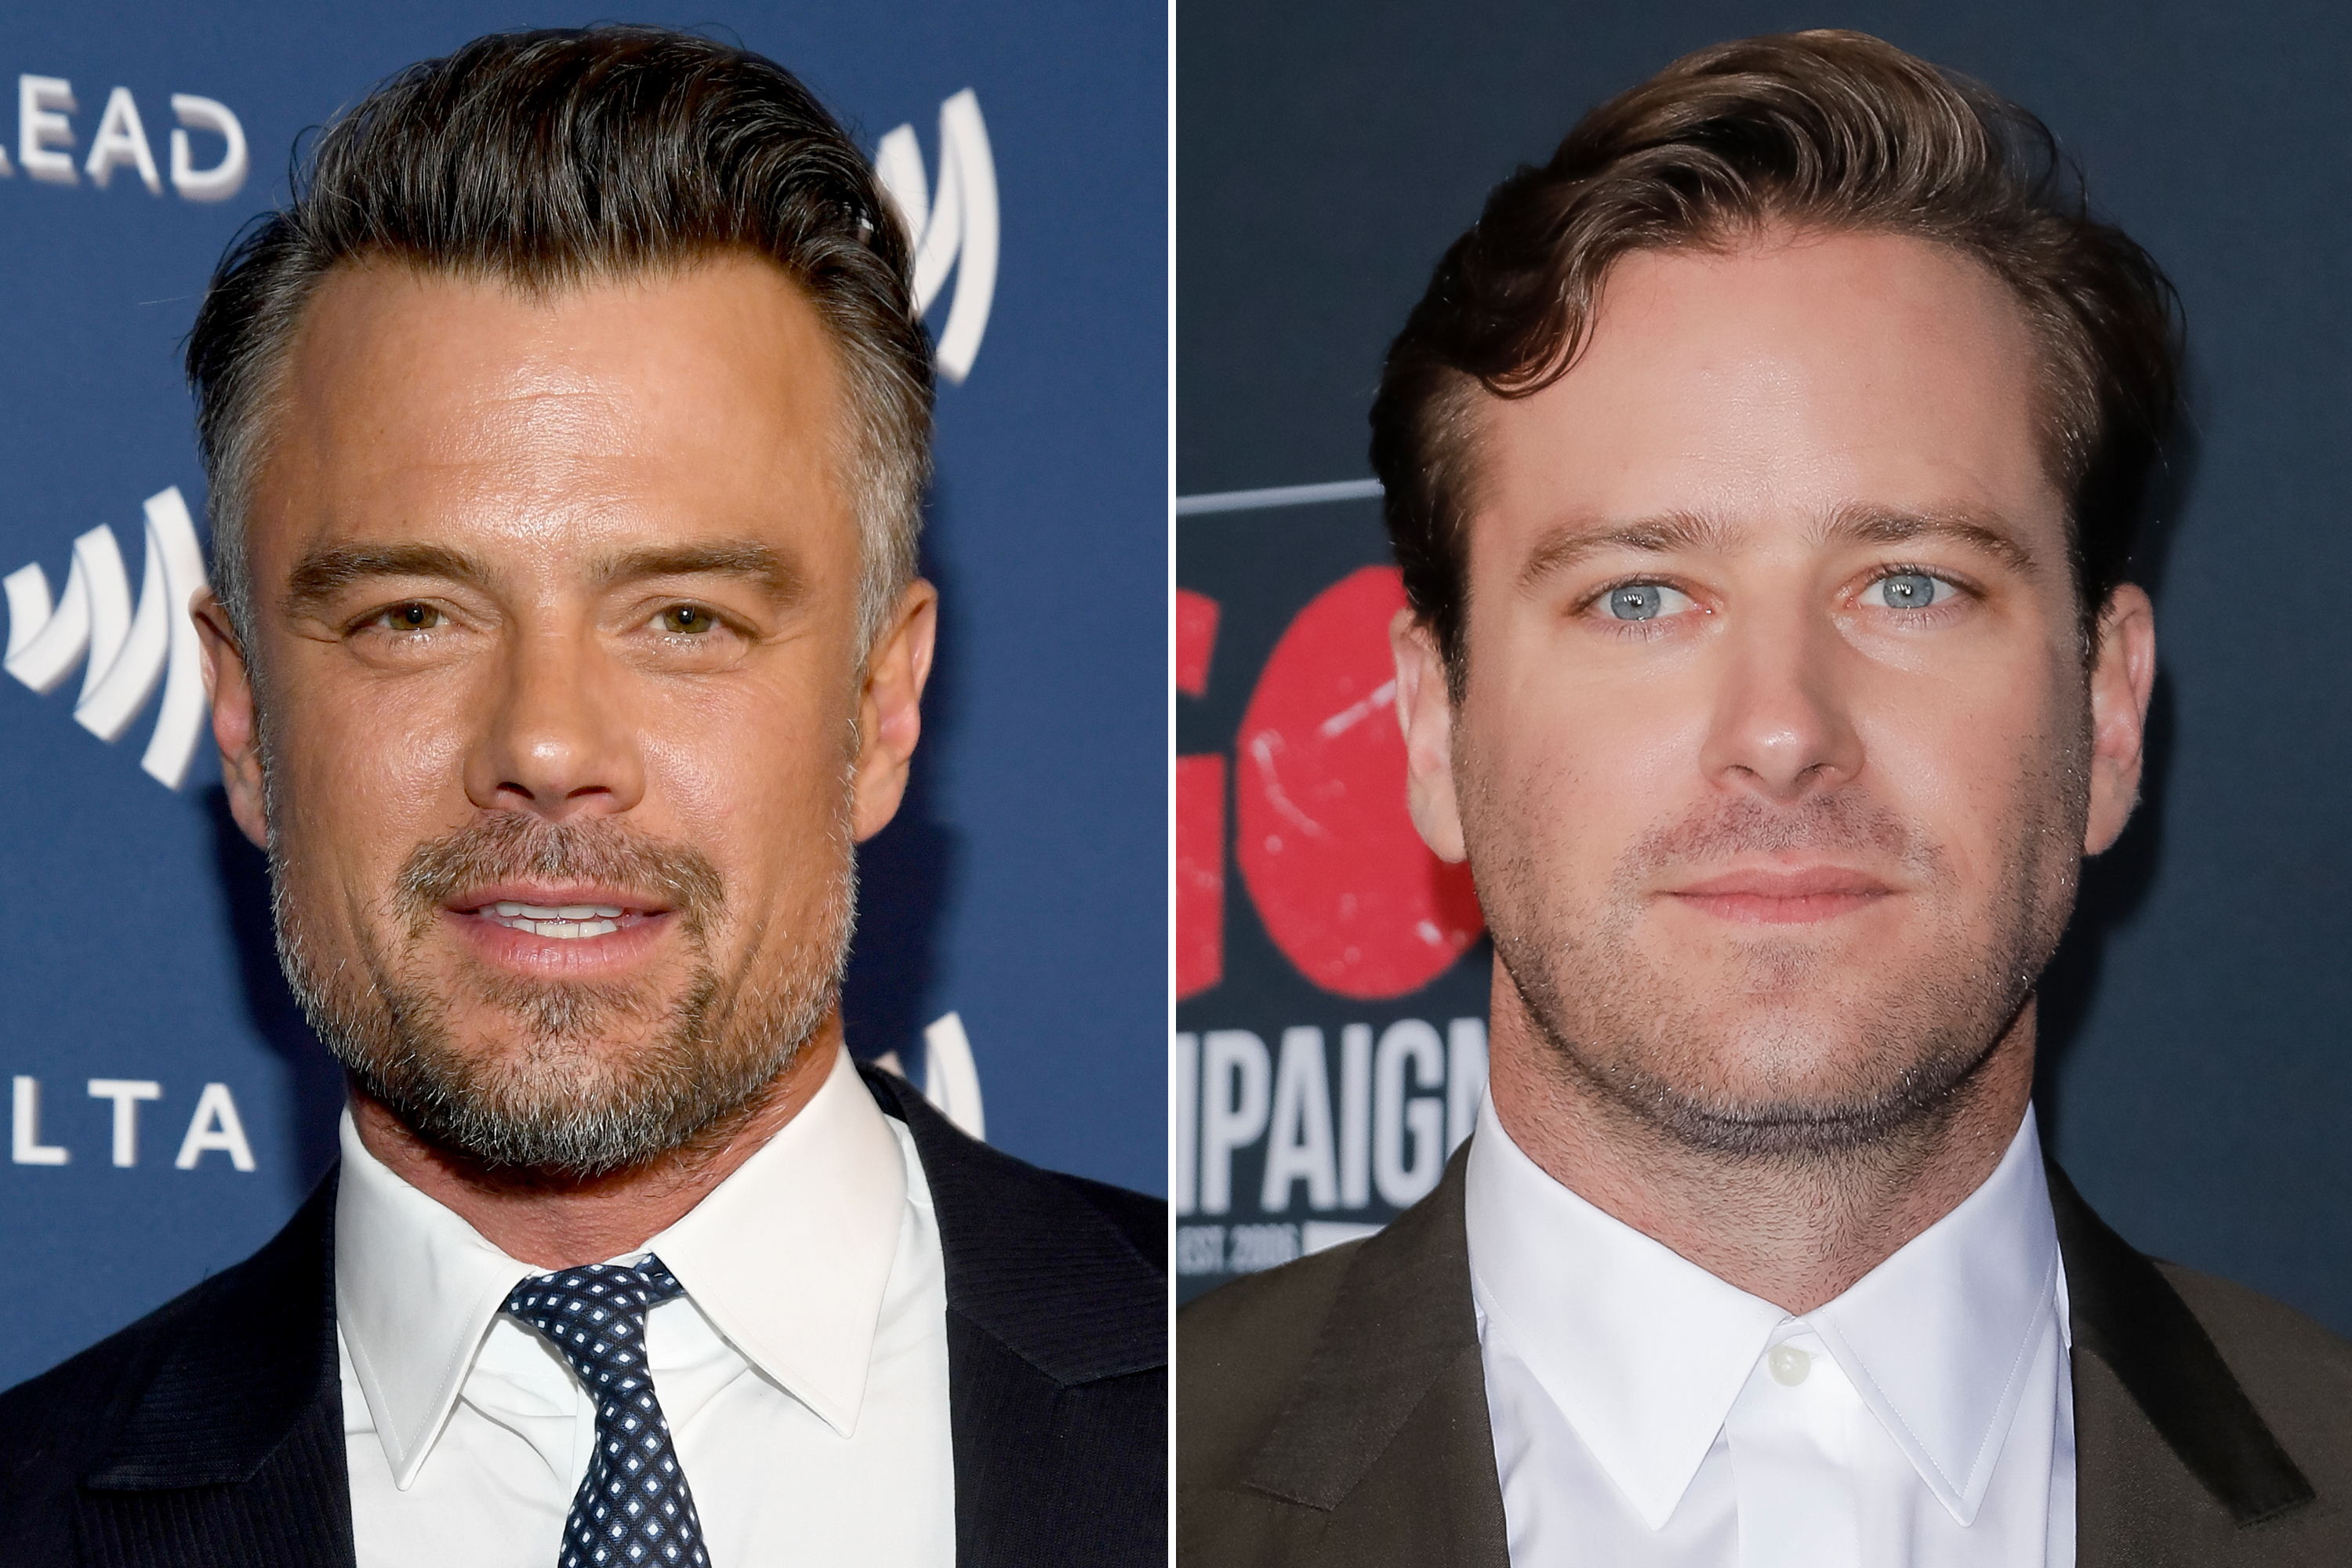 Josh Duhamel may replace Armie Hammer in 'Shotgun Wedding' movie